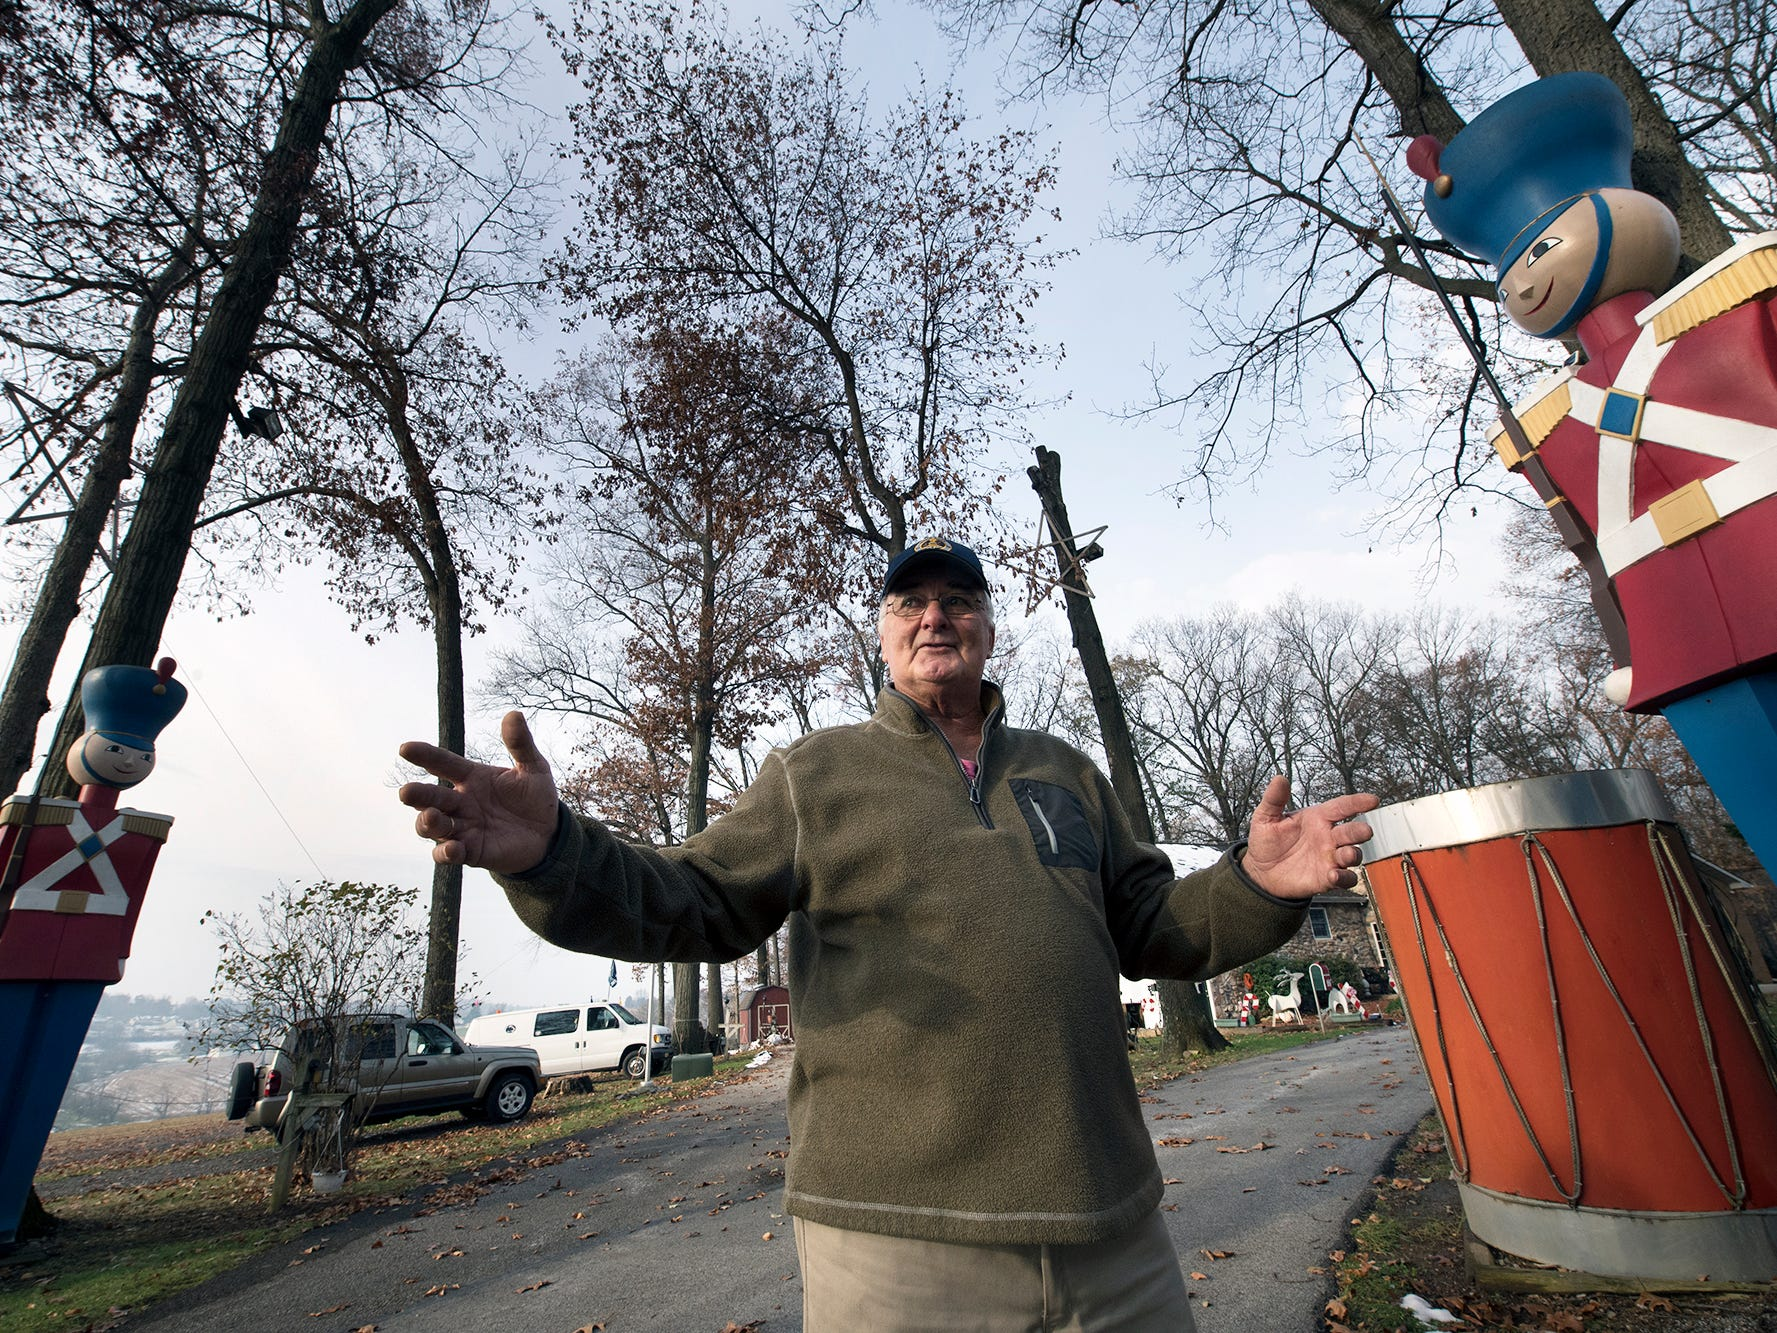 Donnie Webb stands with part of his Christmas display that stays up all year at his York Township home on Monday. After a tough year, Webb has decided to discontinue the public display this year after 27 years. The large soldiers were once part of a Christmas display at the Bon-Ton.